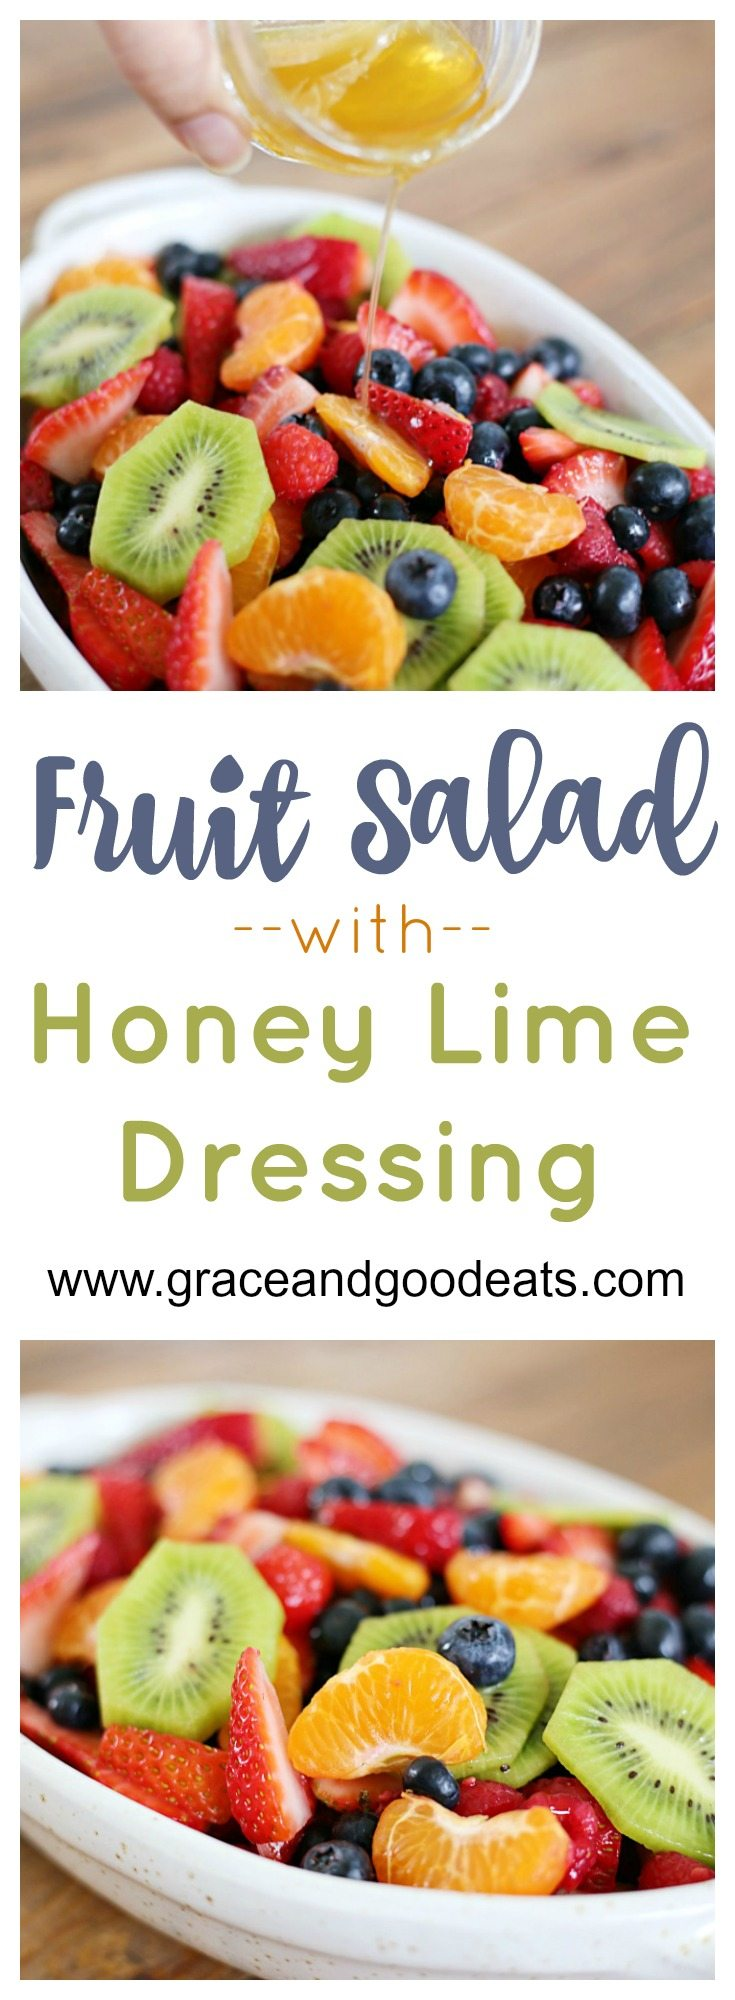 This fruit salad with honey lime dressing is the only recipe you need for all of your summer celebrations!  It is my go-to recipe when I need to bring dish to a BBQ or picnic.  Fresh, colorful berries paired perfectly with a honey lime glaze you will want to eat with a spoon.